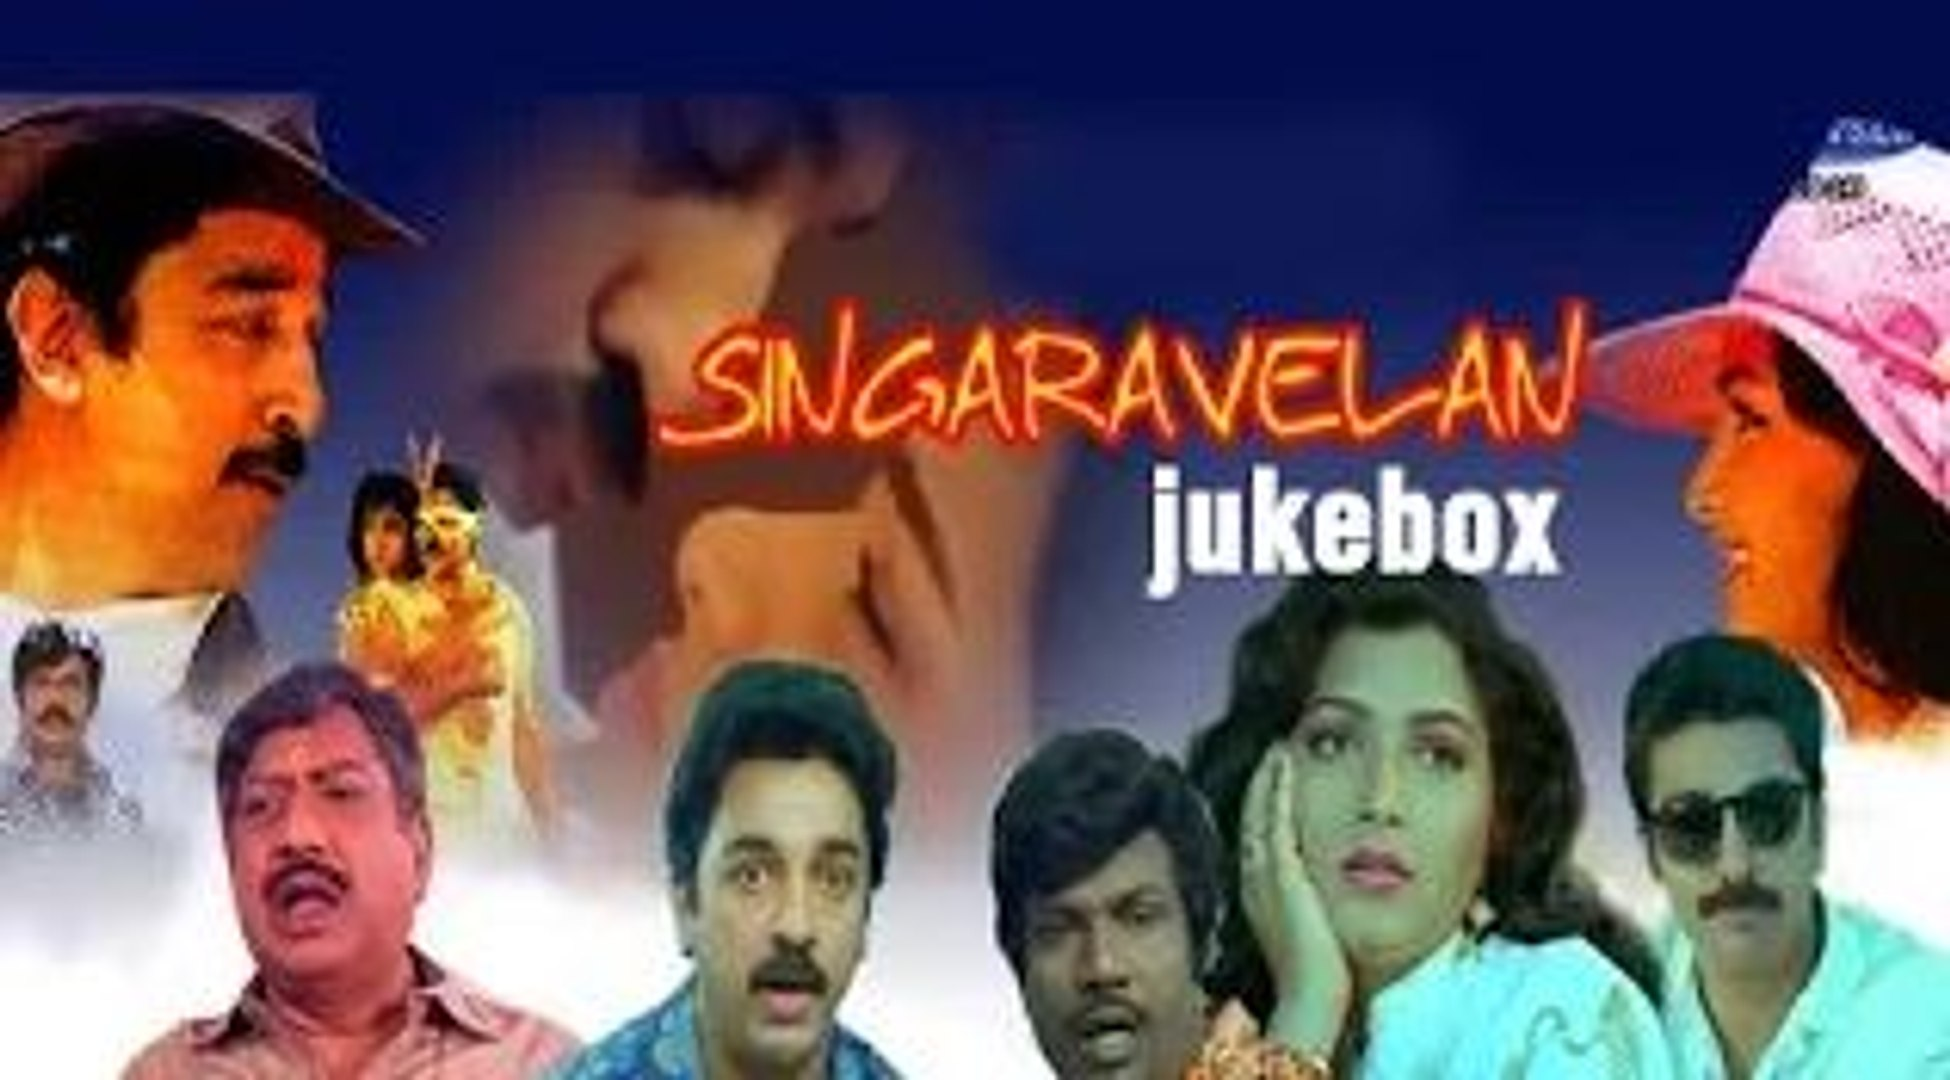 Singaravelan Tamil Movie Songs Jukebox - Ilaiyaraja Hits - Tamil Songs Collection